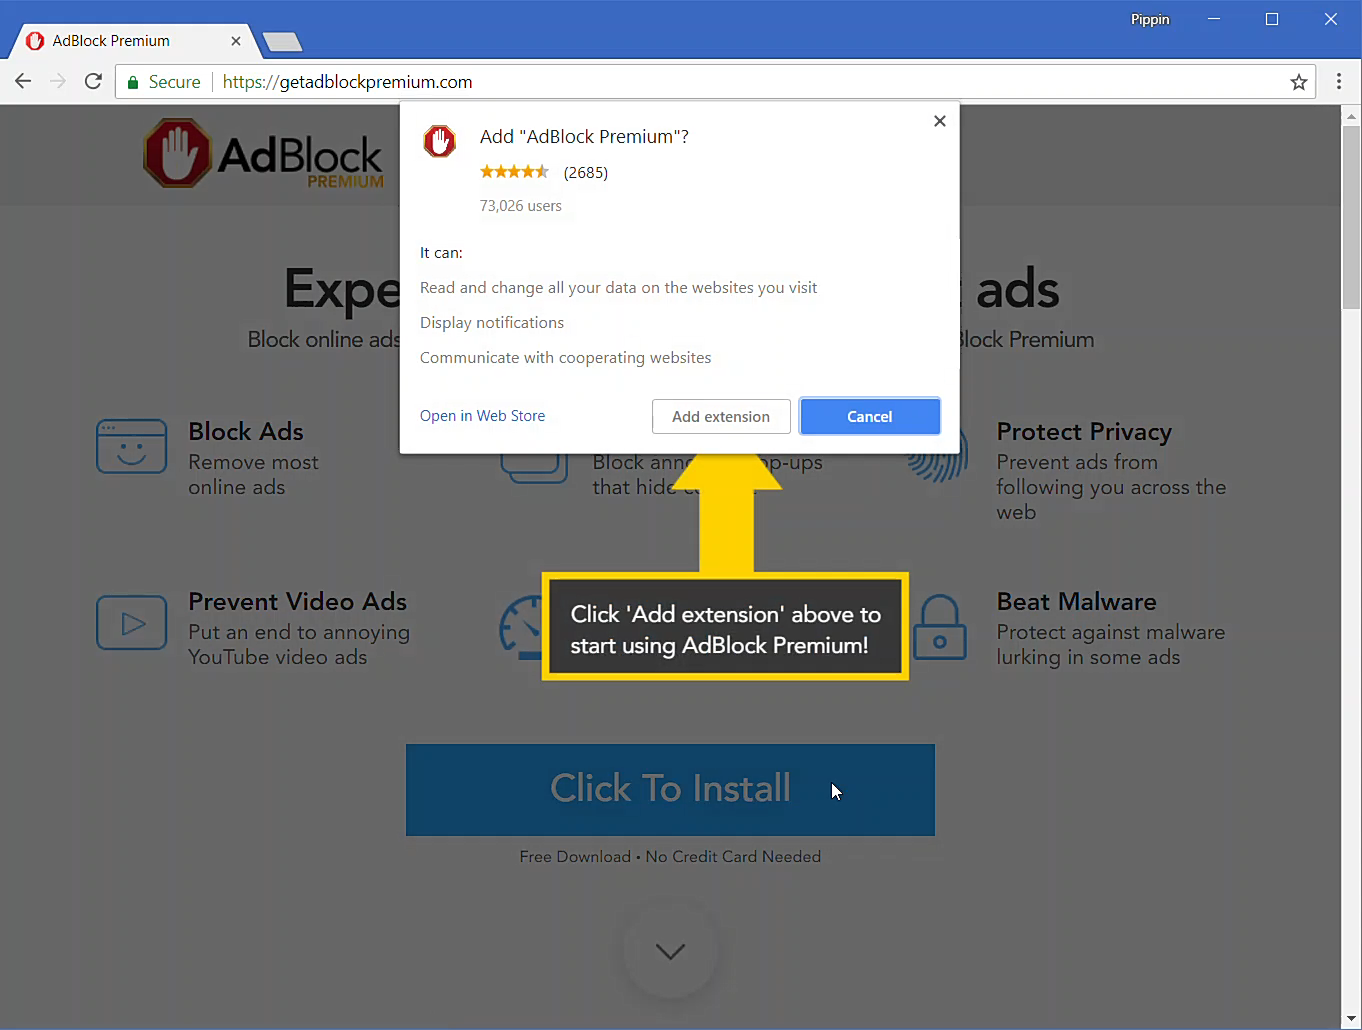 Adding AdBlock Premium to Chrome